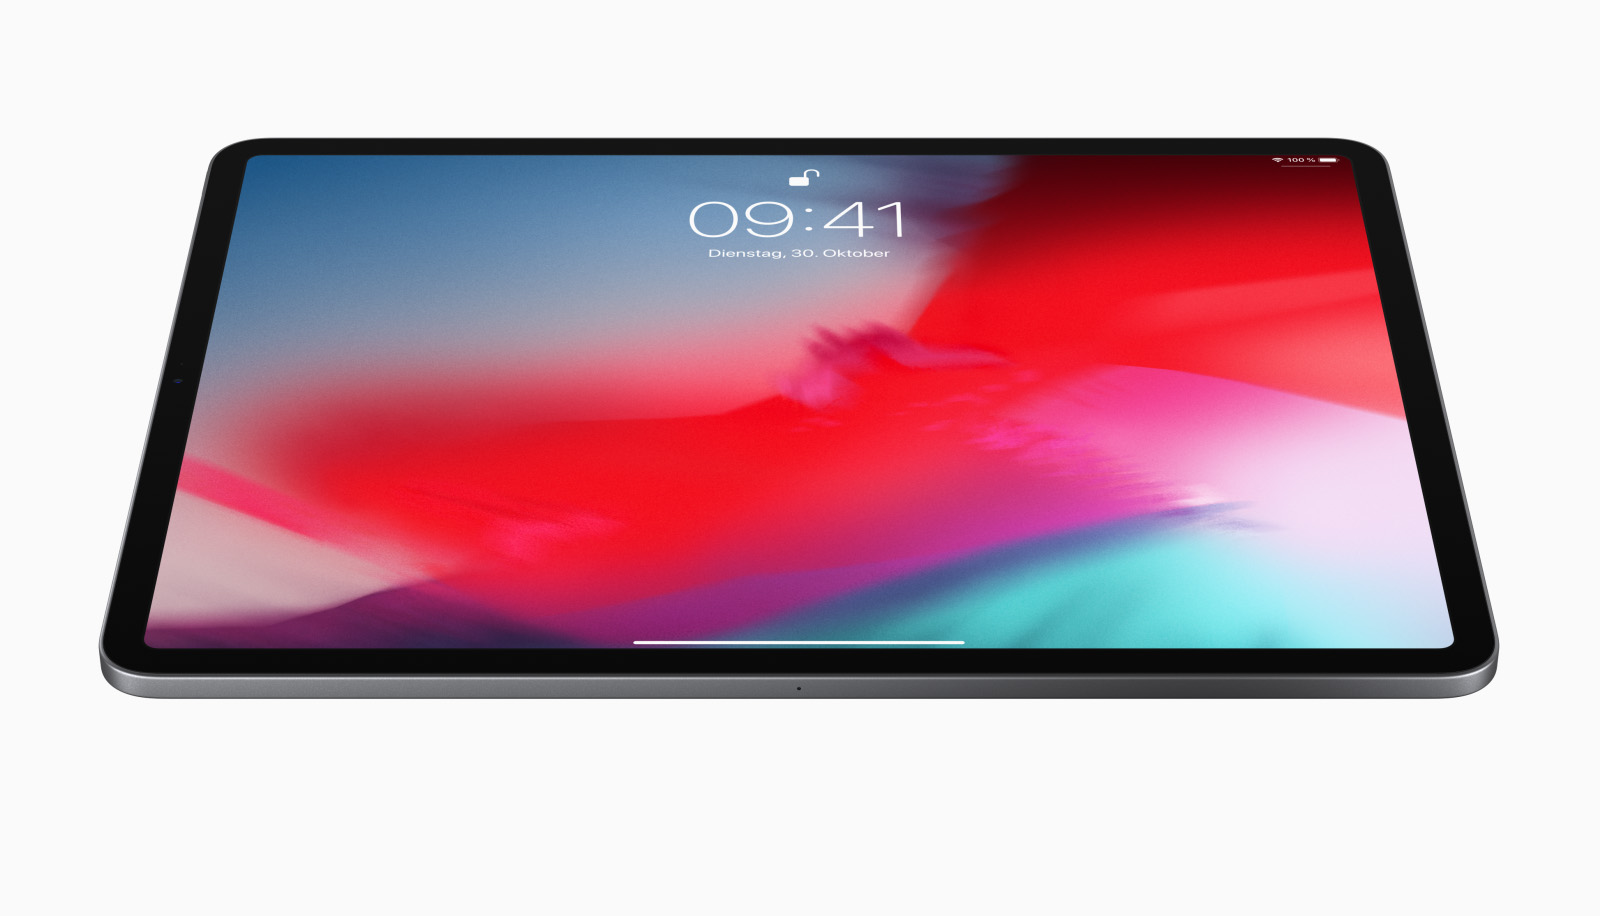 Apple iPad Pro 11 (2018, WiFi, 64 GB) Tablet Review